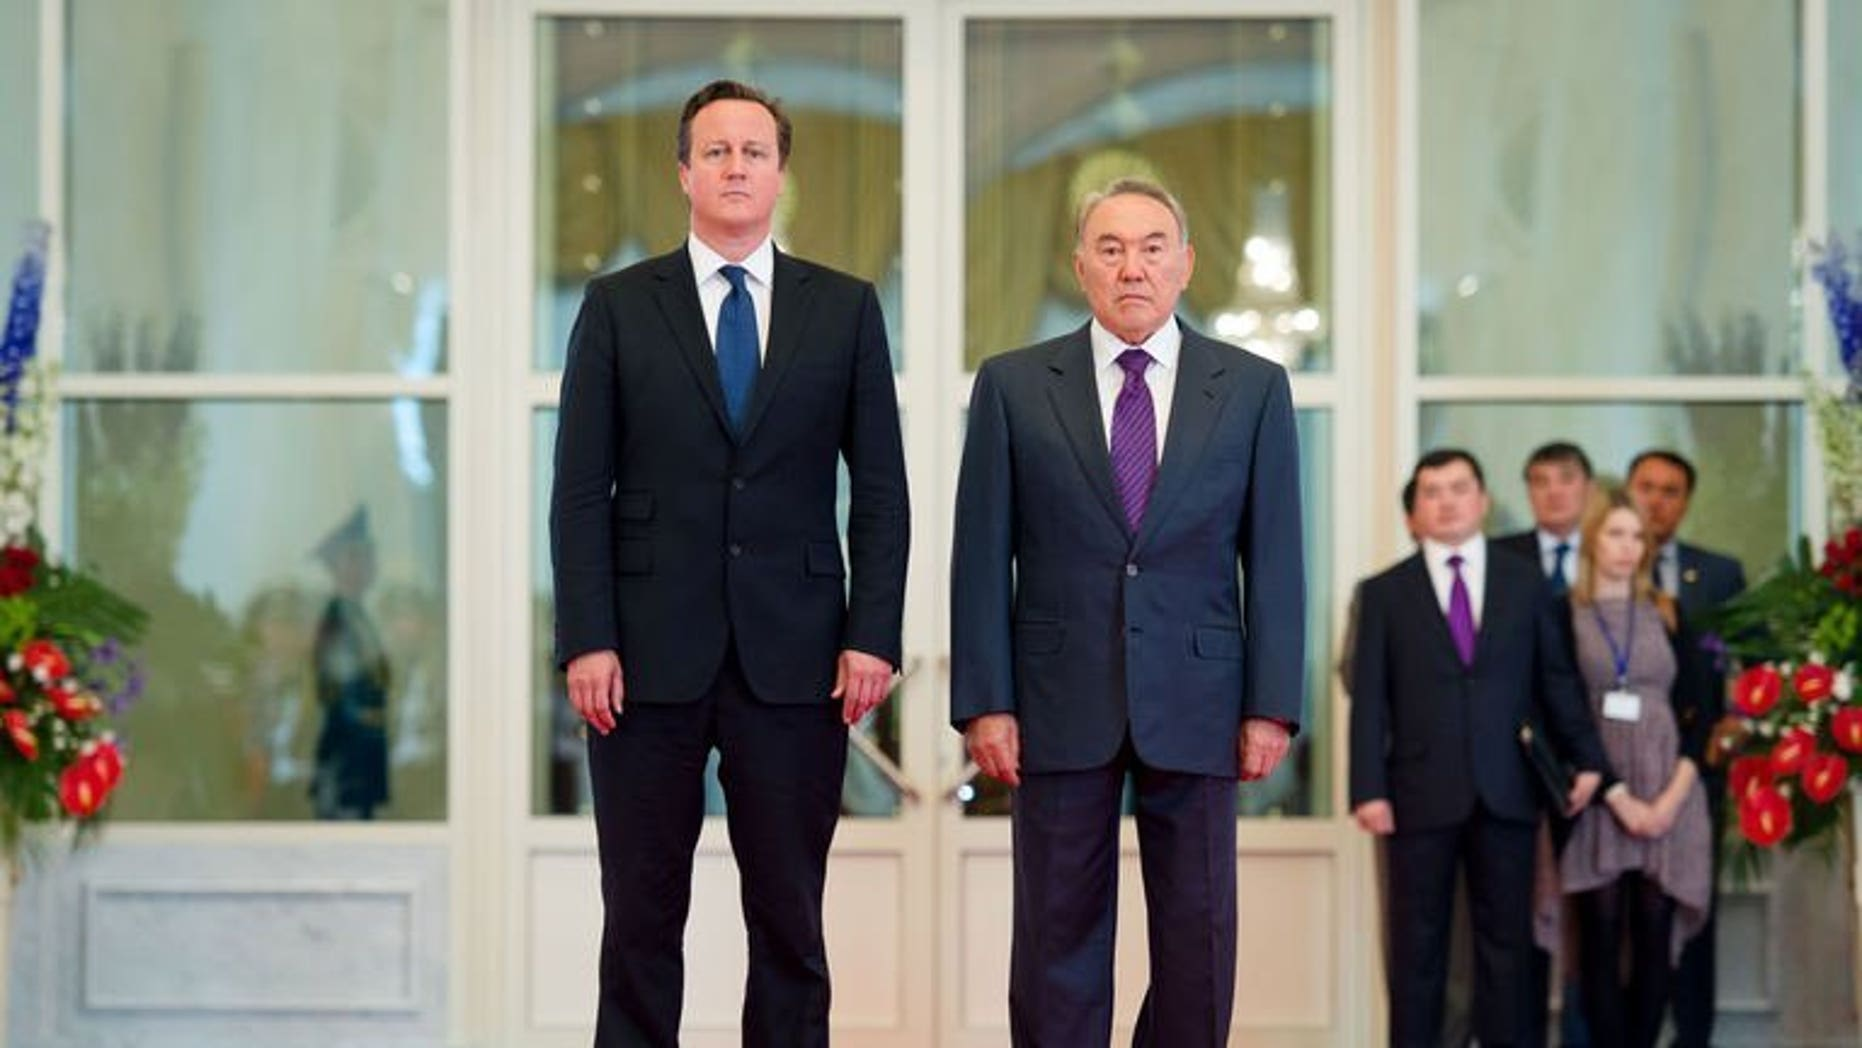 British Prime Minister David Cameron (L) and Kazakhstan President Nursultan Nazarbayev stand together as they listen to the national anthem in the Presidential Palace in Astana, Kazakhstan on July 1, 2013. Cameron unveiled a massive oil and gas processing plant on the shores of the Caspian Sea on Monday during his first visit to ex-Soviet Kazakhstan.